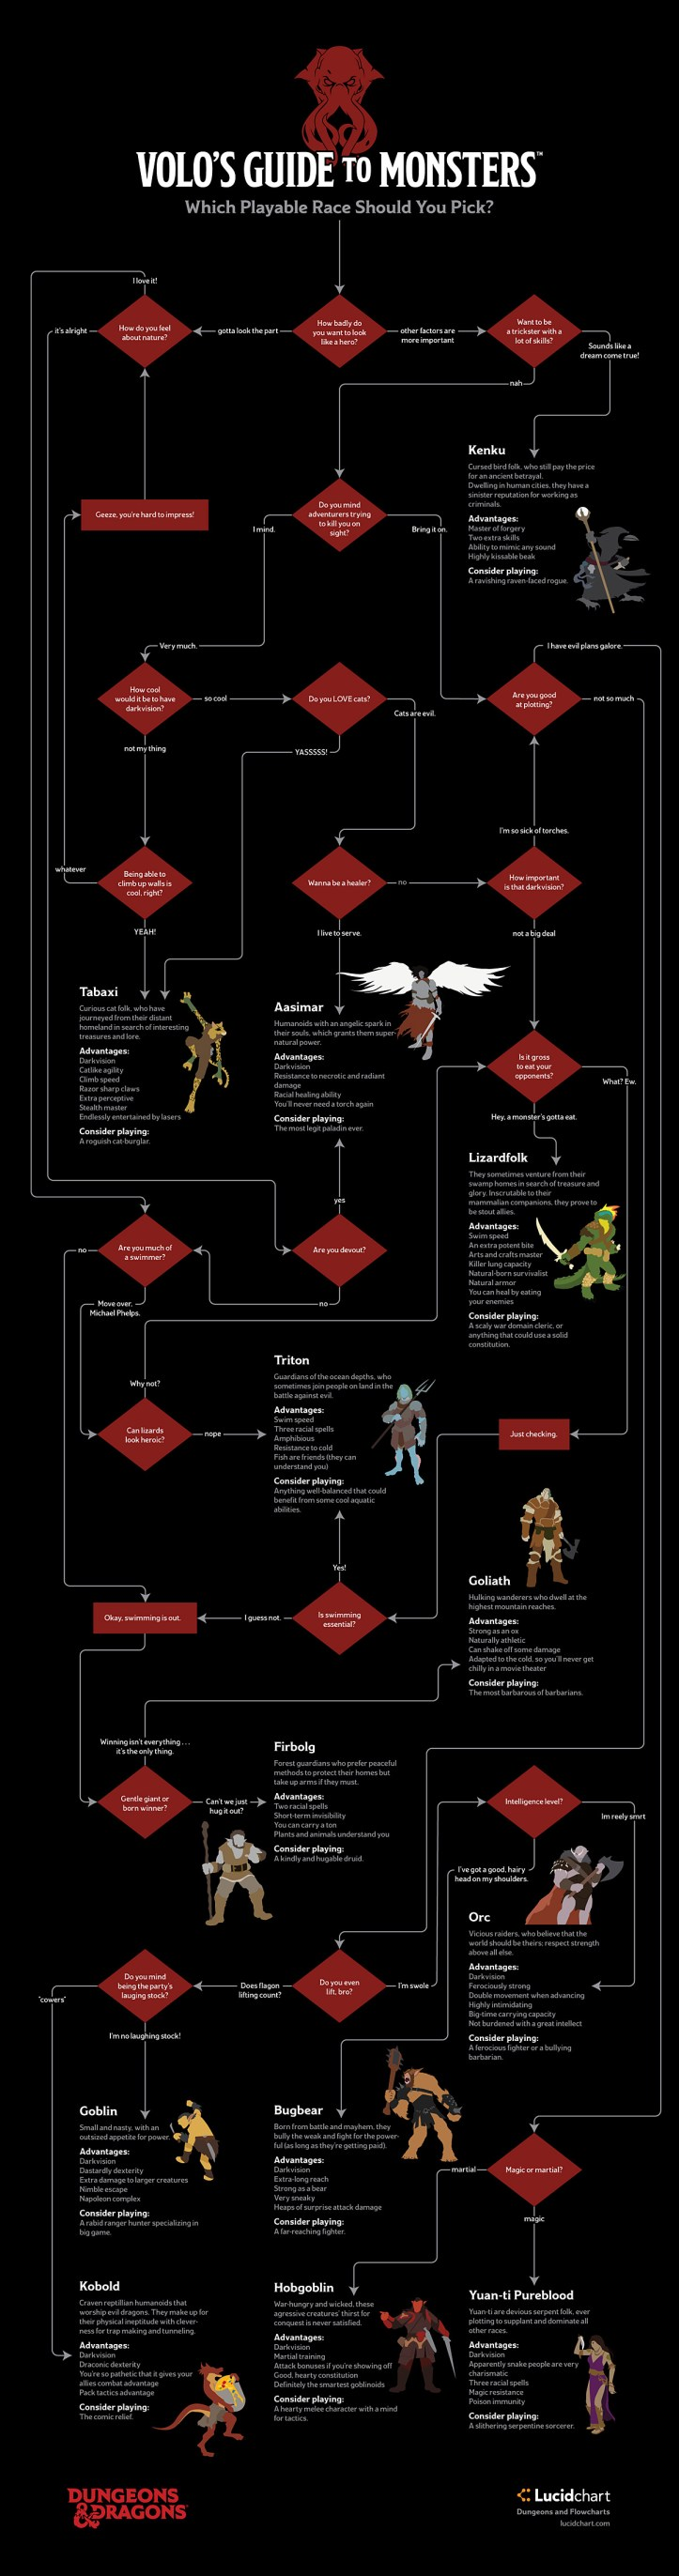 dungeons-and-dragons-flowchart-01